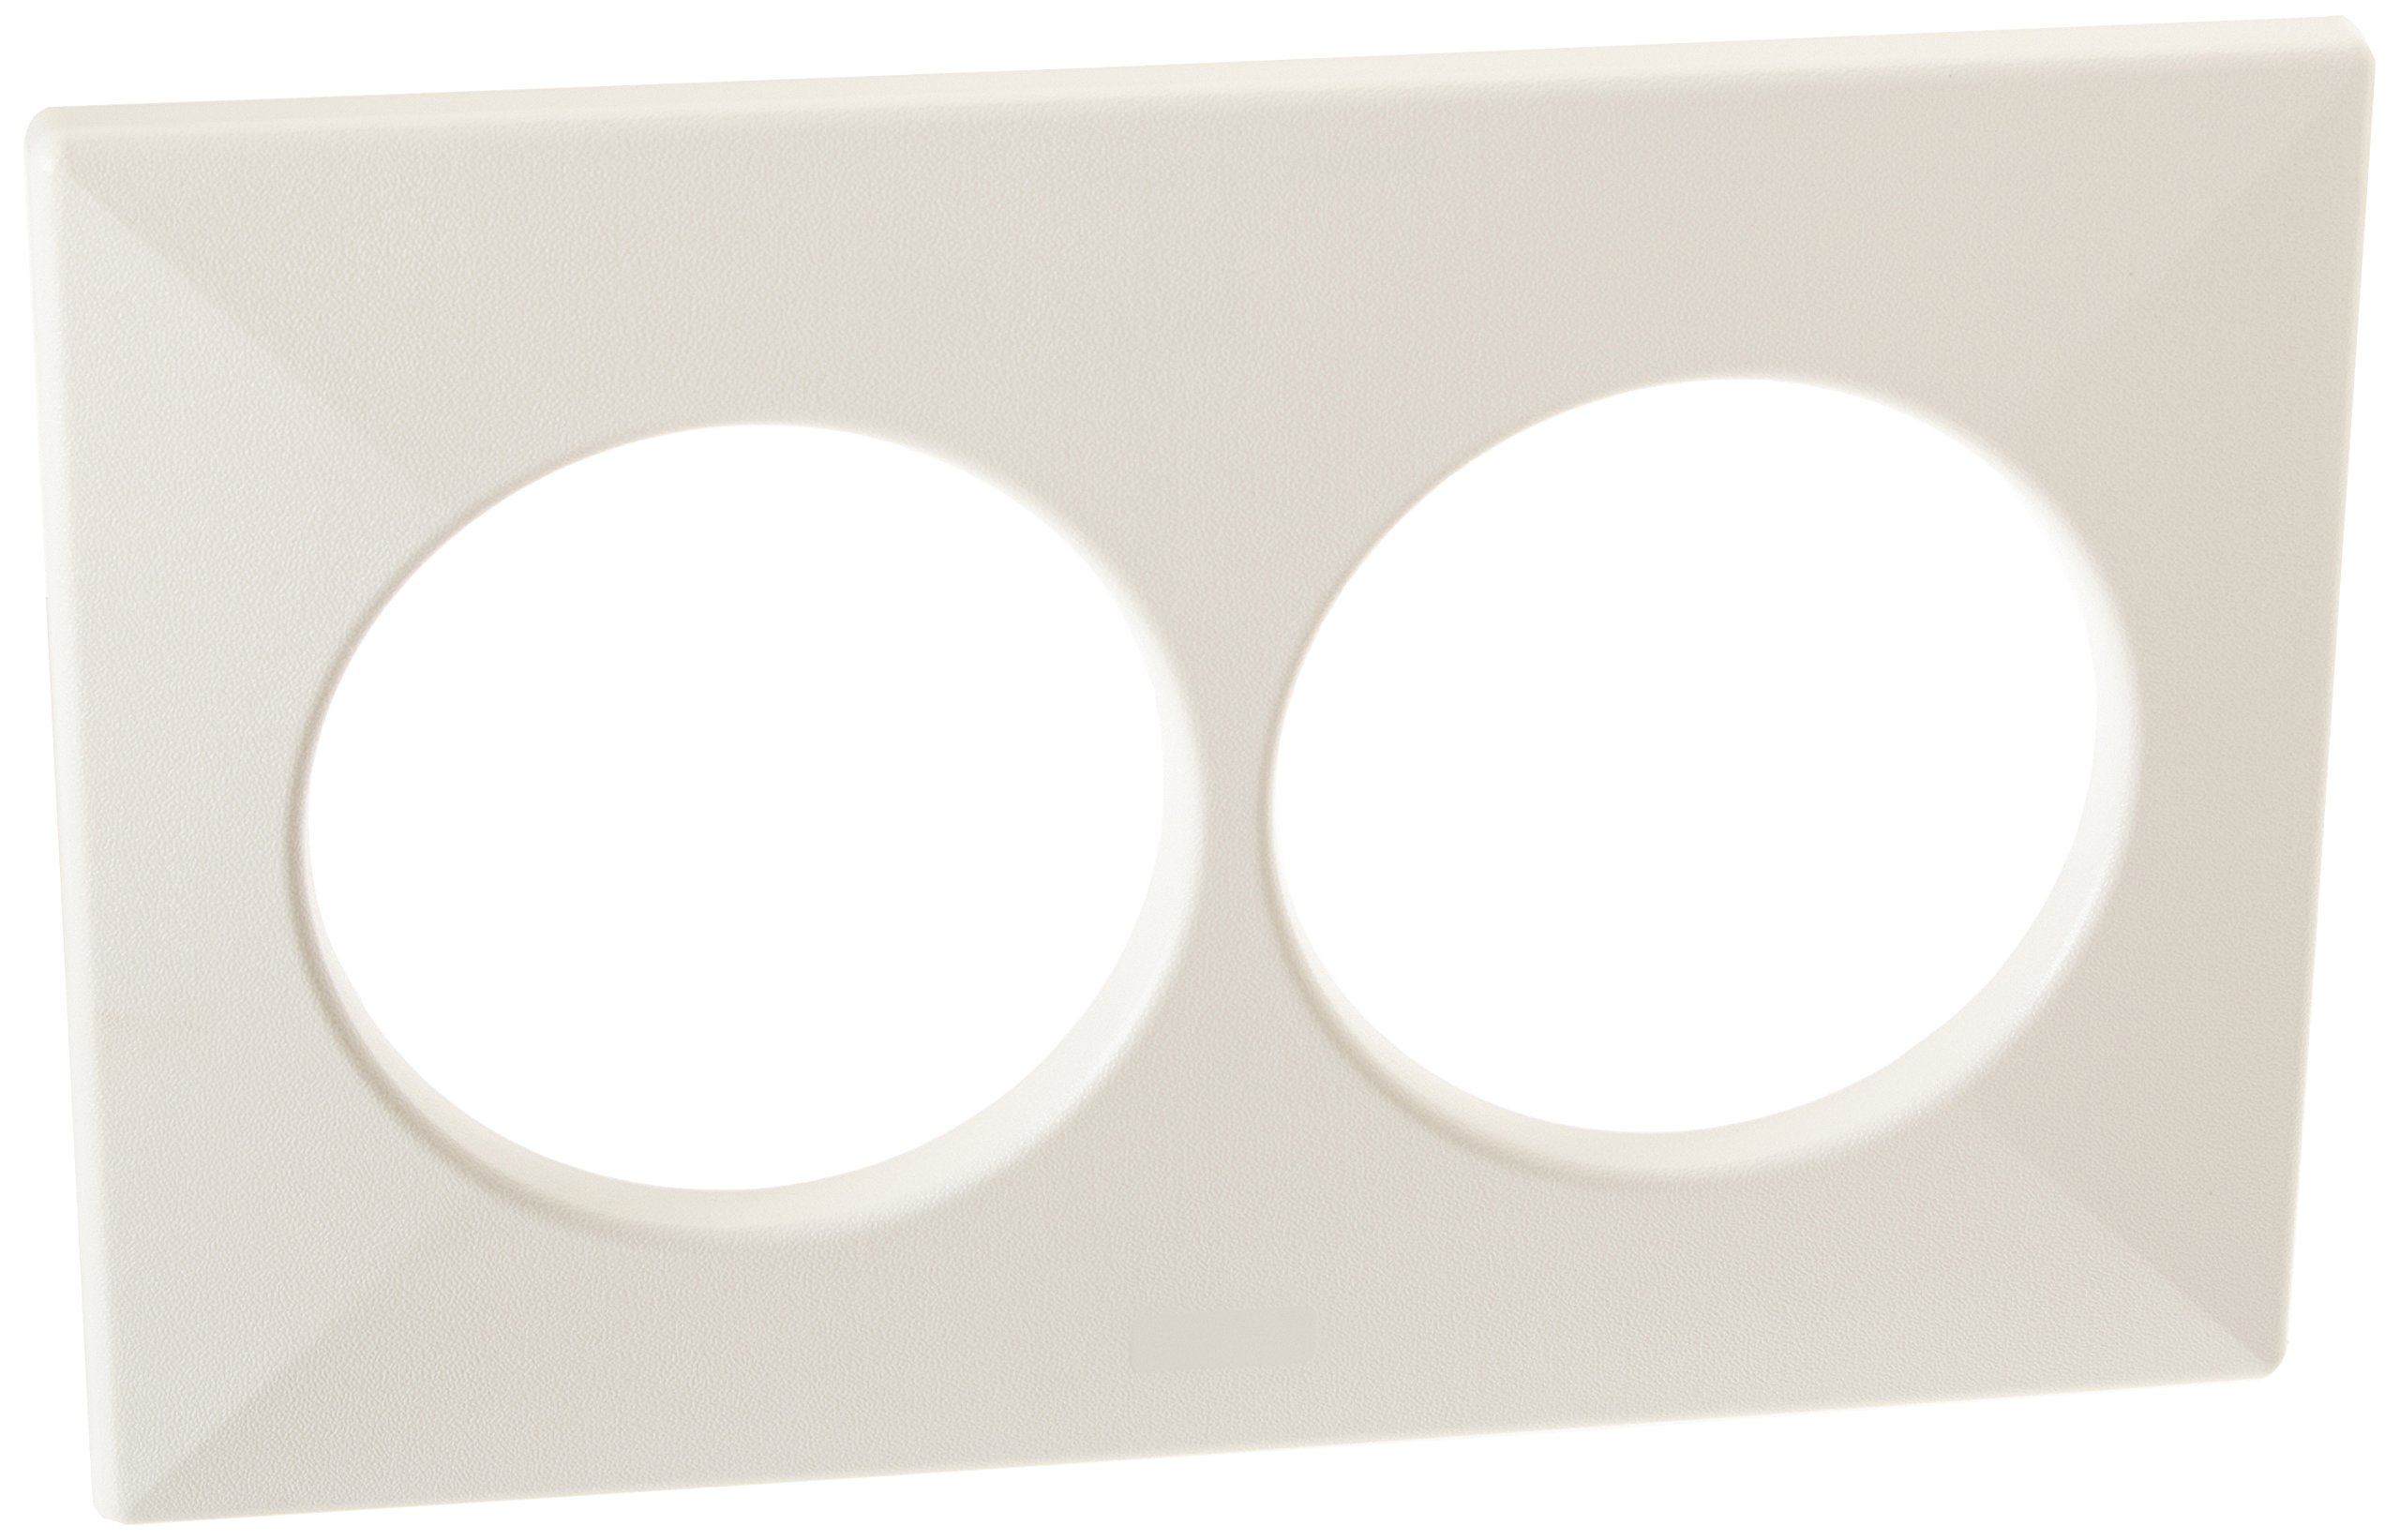 Broan S97010320 Bathroom Heater Cover Grille Assembly